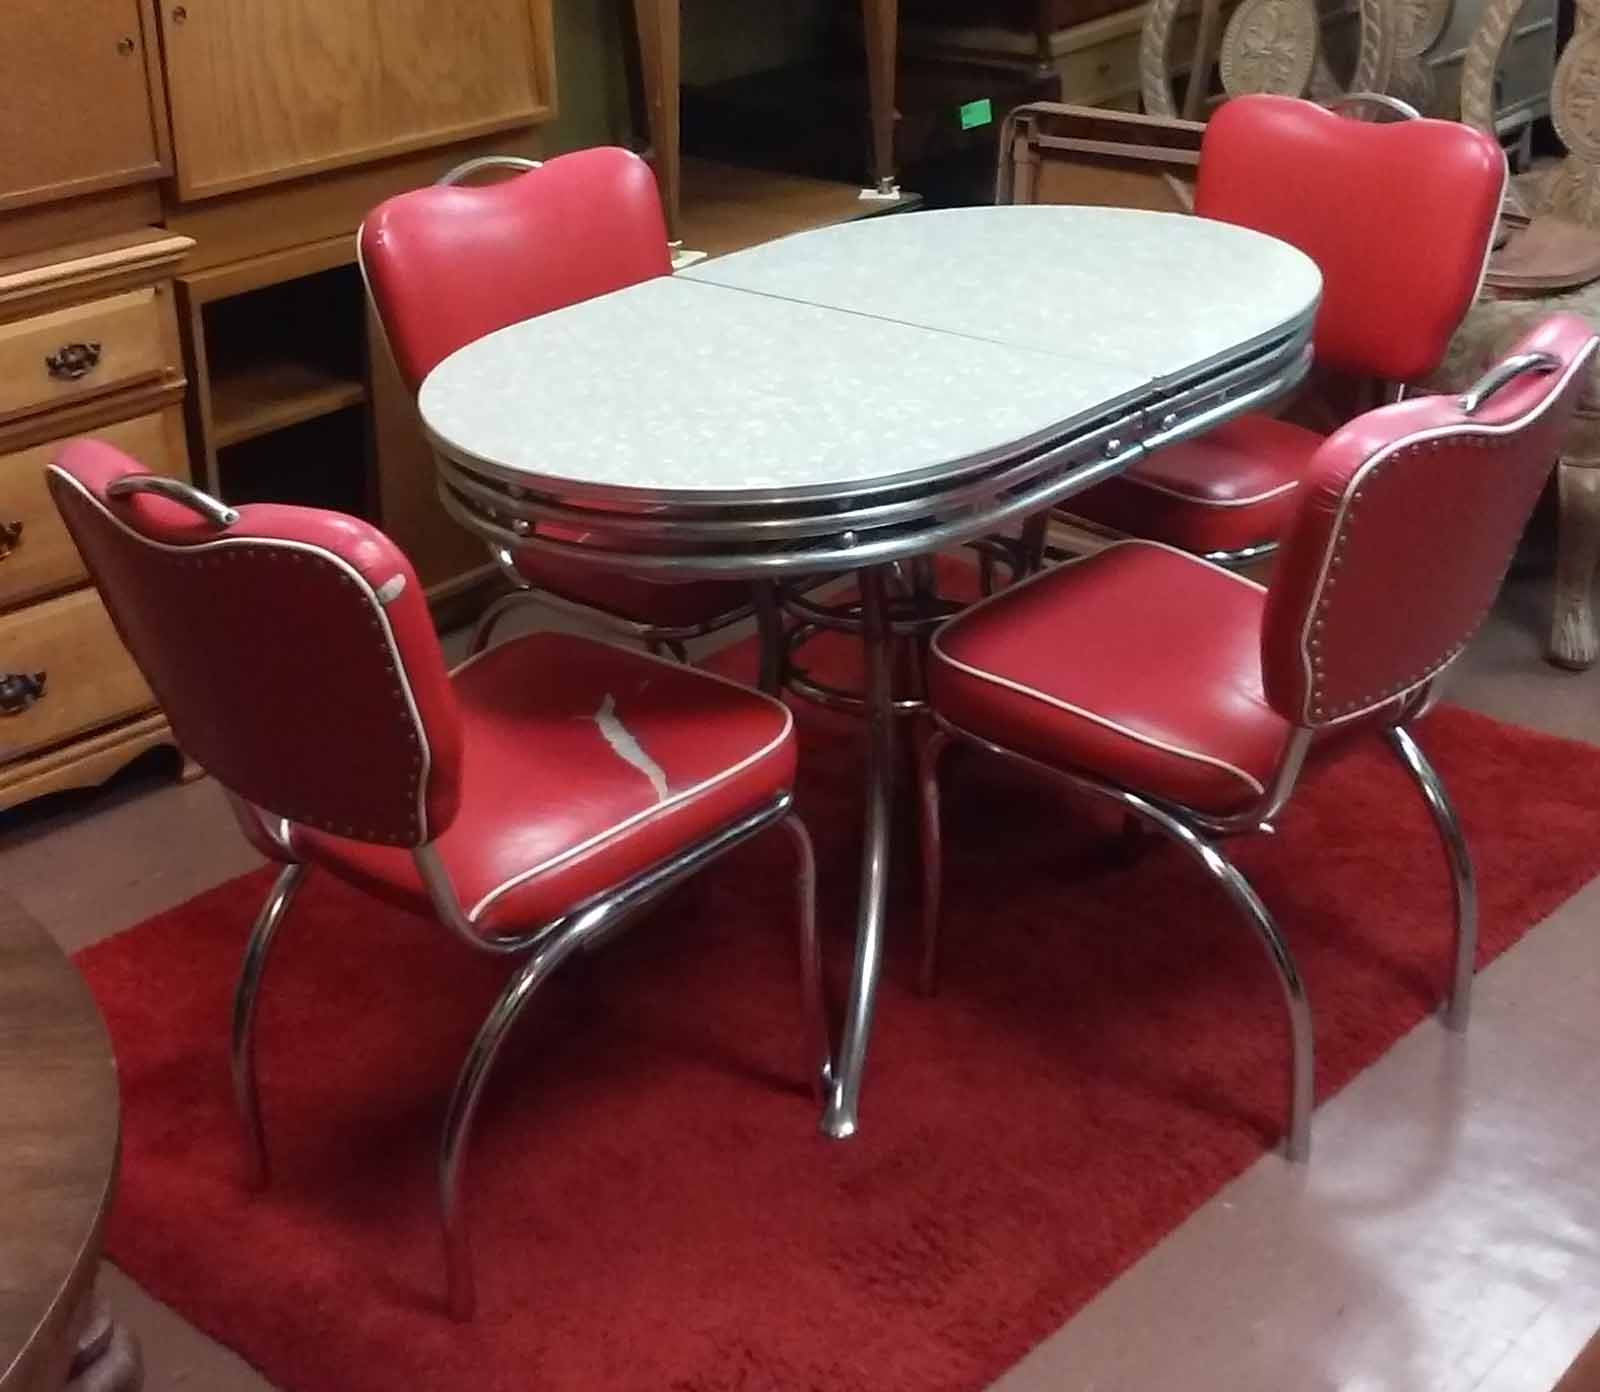 Charmant SOLD 50u0027s Style Chrome Table With Leaf And 4 Red Chairs   $175